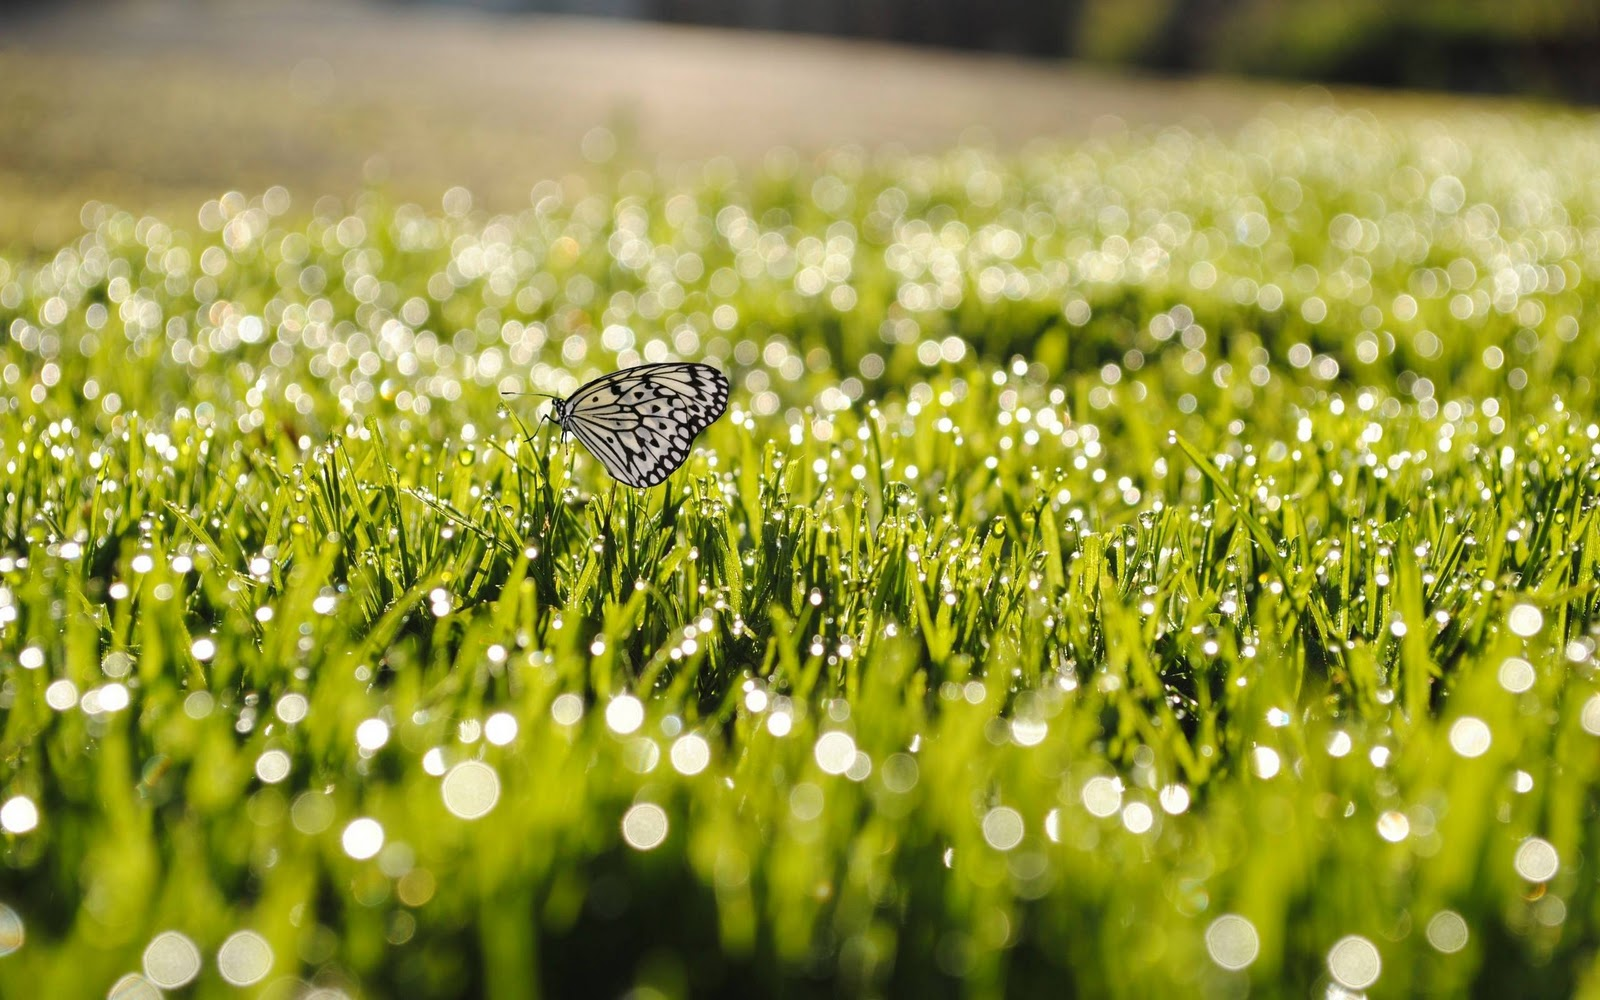 butterfly on grass wallpaper background